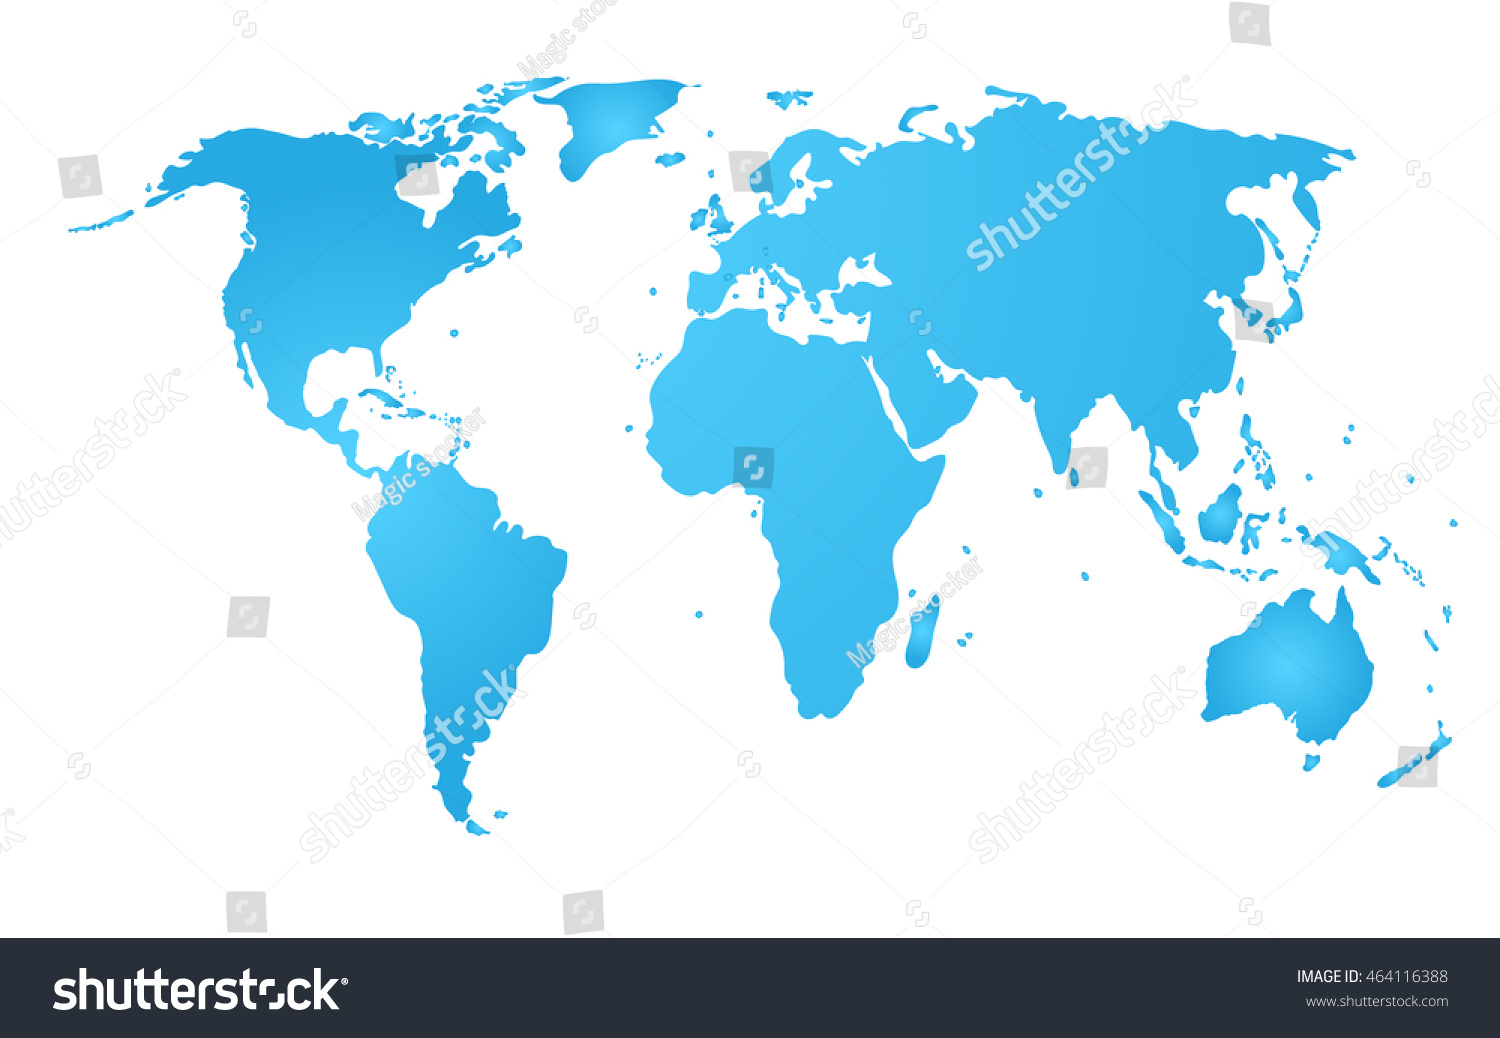 Blue world map vector vectores en stock 464116388 shutterstock blue world map vector gumiabroncs Images